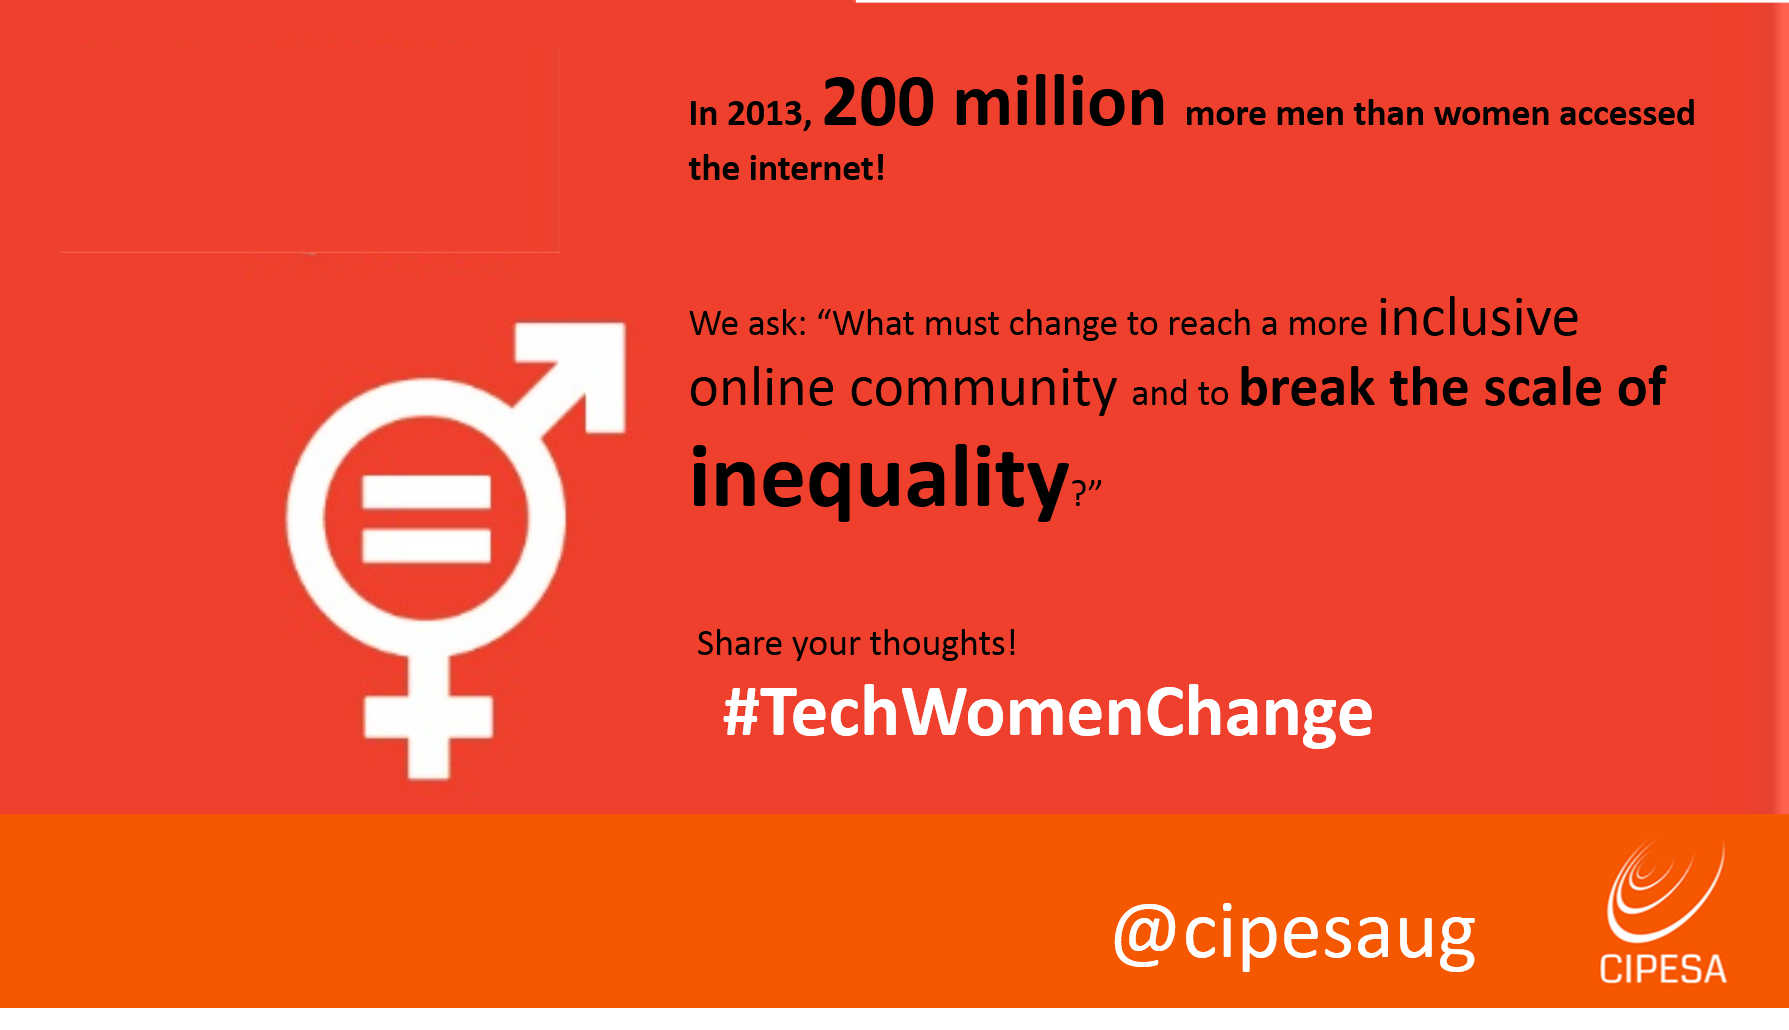 In 2013, 200 million more men than women accessed the internet! Share your thoughts about this:#WomenTechChange | #iwd #BeBoldForChange https://t.co/INnHACaDzn